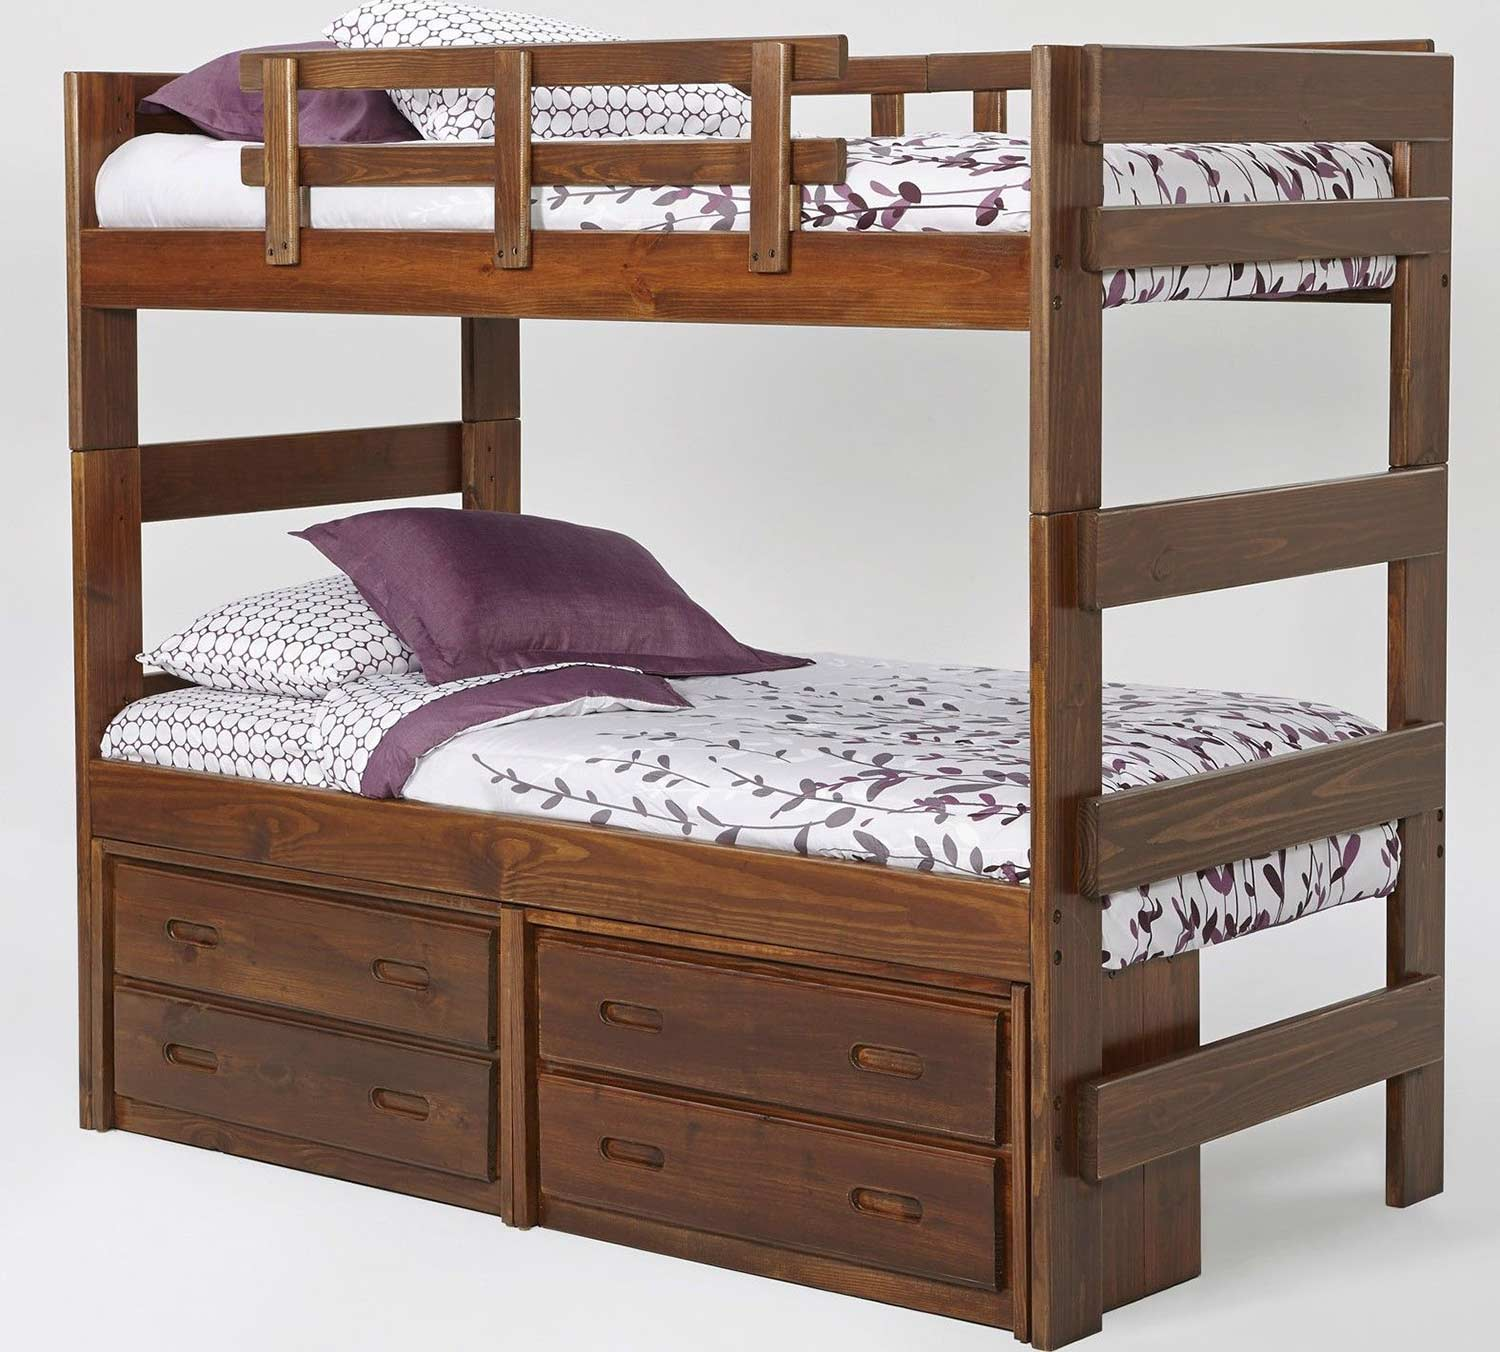 Chelsea Home Twin Over Twin Extra Tall Bunk Bed - Rustic Brown